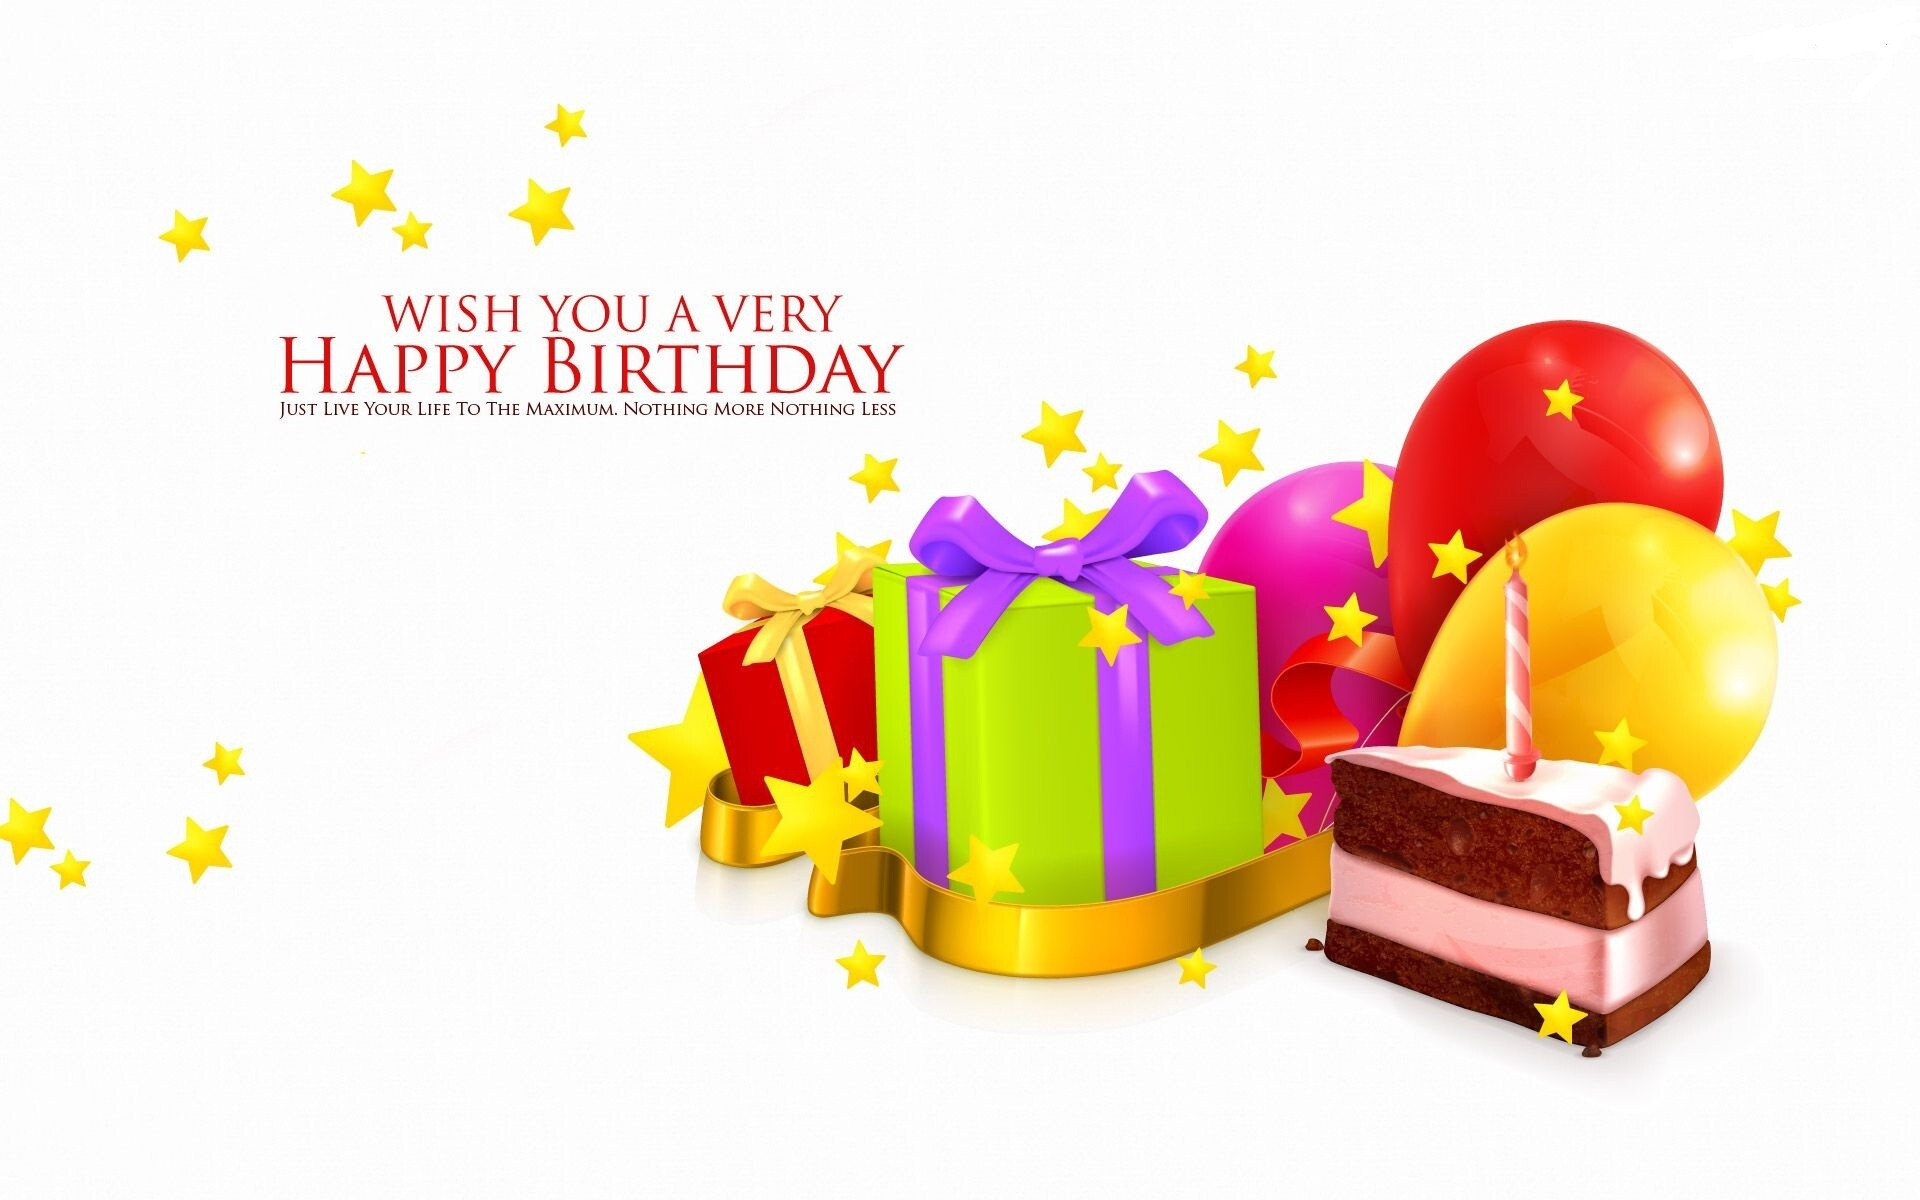 wish you happy birthday greeting quote hd wallpaper | hd wallpapers